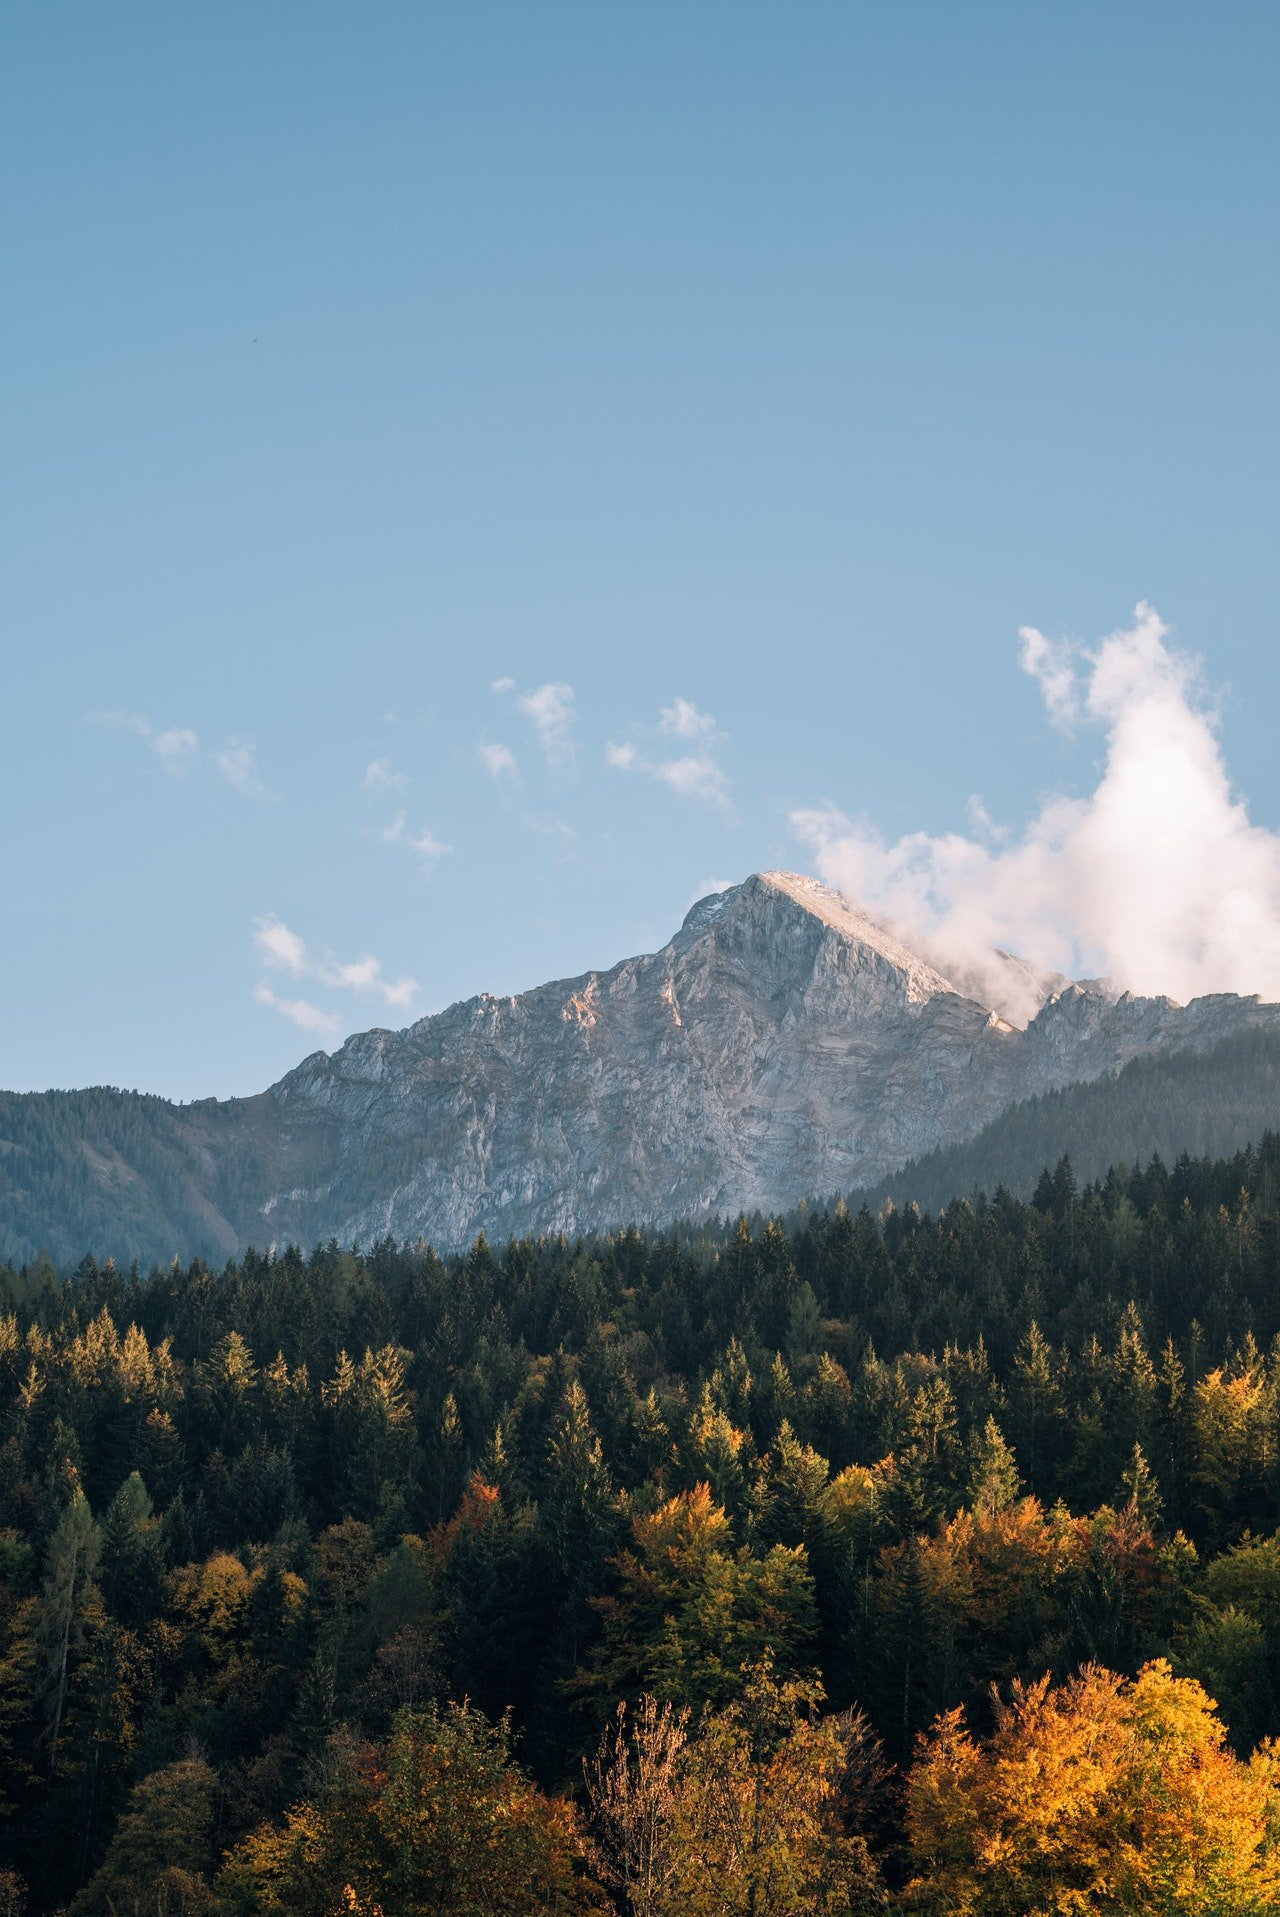 Photo of a mountain behind lush evergreen forest | Photo: Pexels